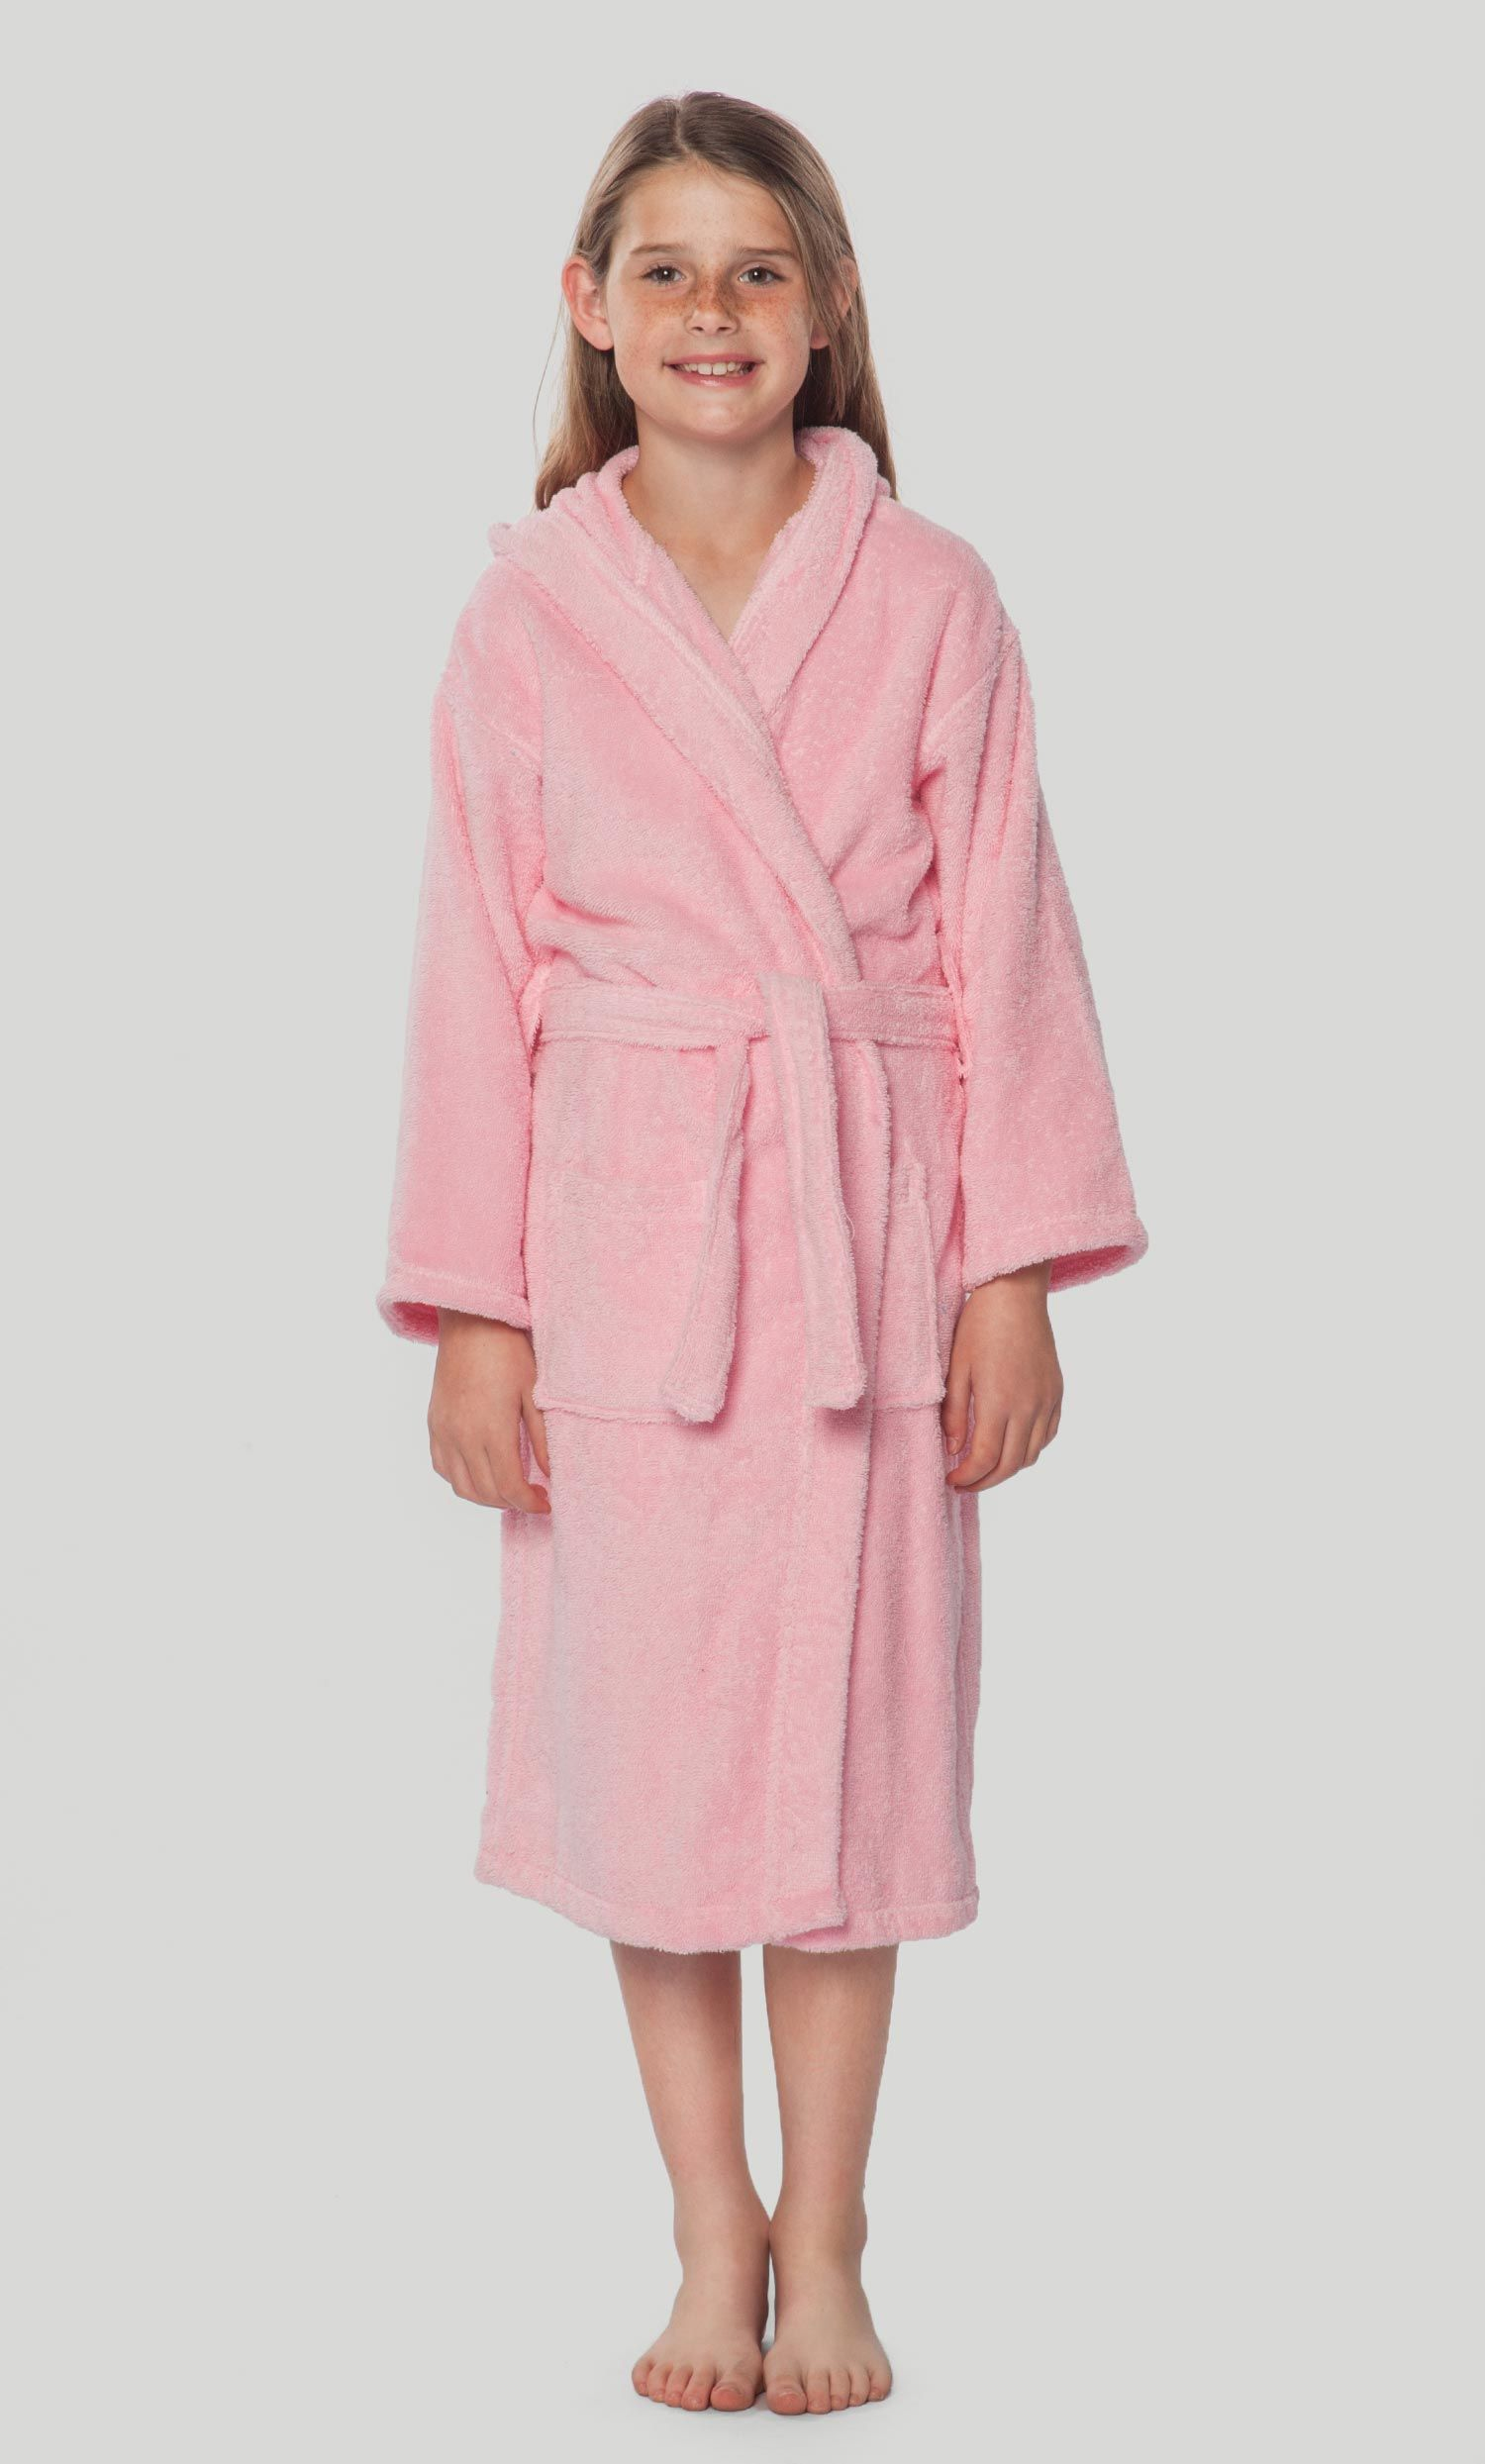 dc030b0989 Kids Bathrobes    Terry Kids Hooded Bathrobes    100% Turkish Cotton Pink  Hooded Terry Kid s Bathrobe - Wholesale bathrobes